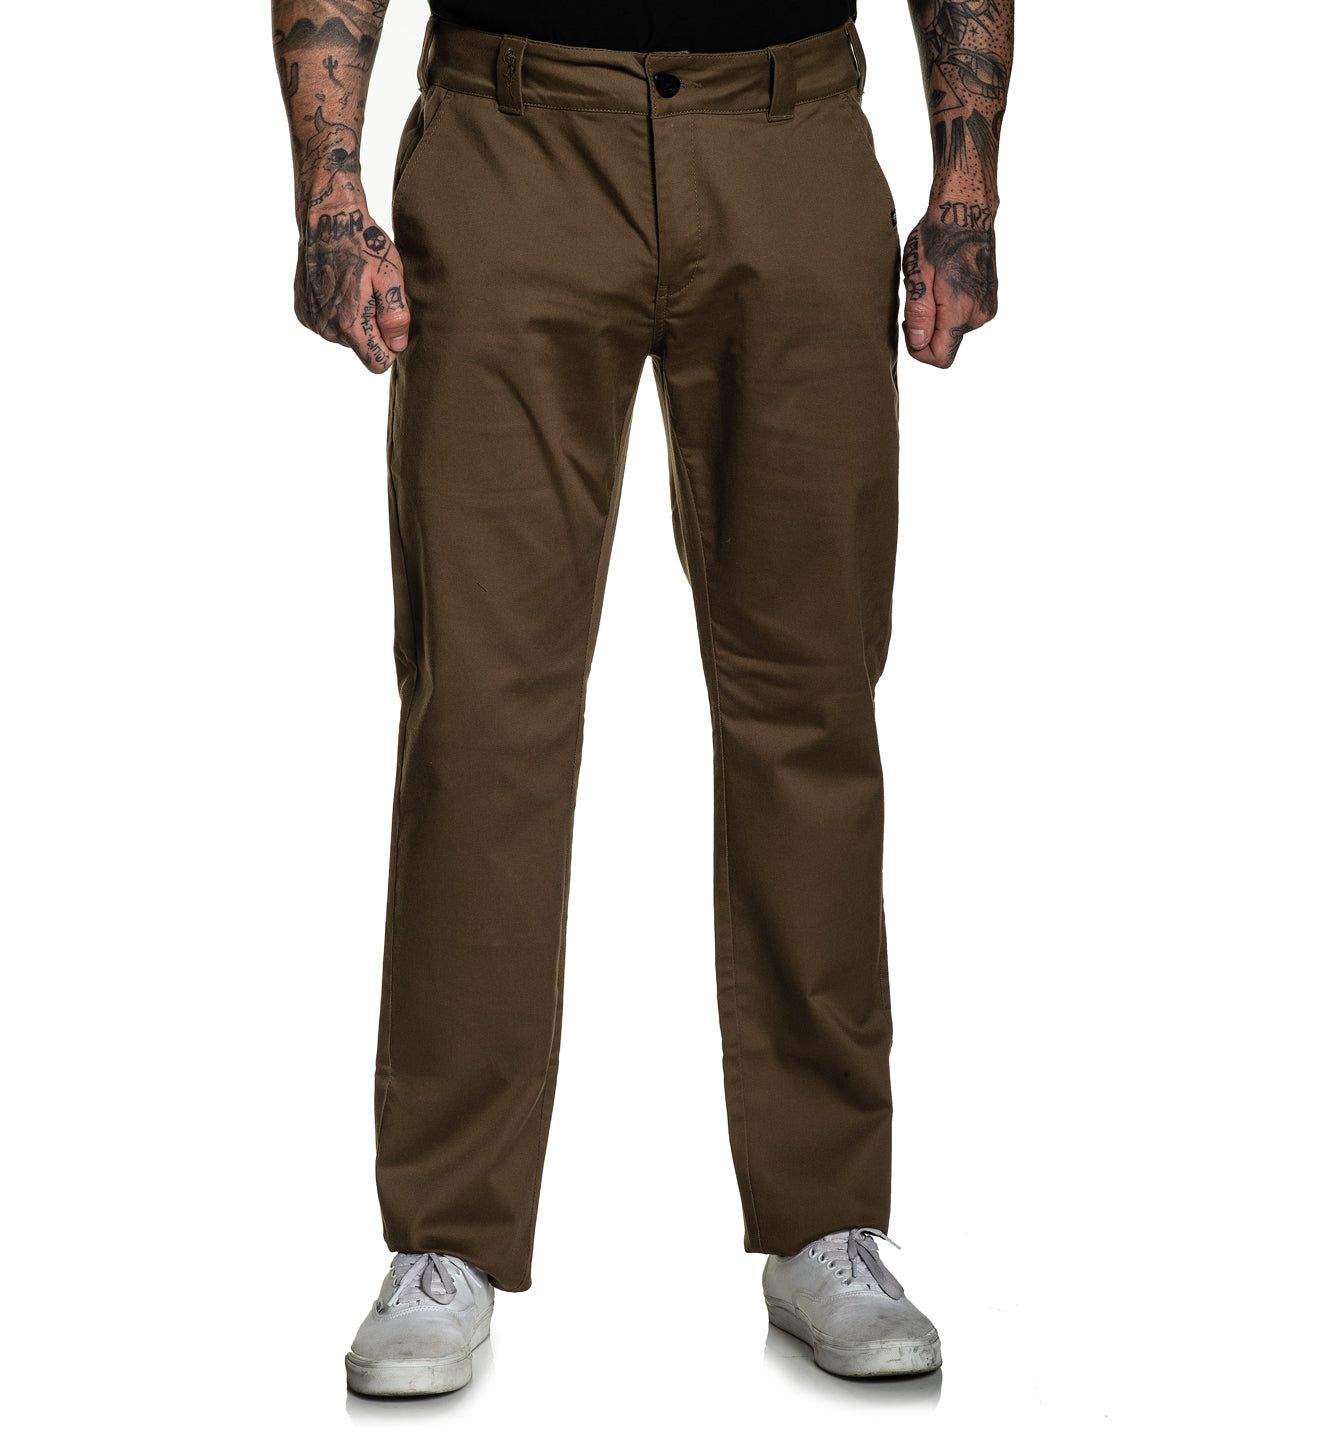 925 Chino Stretch Pant Cub